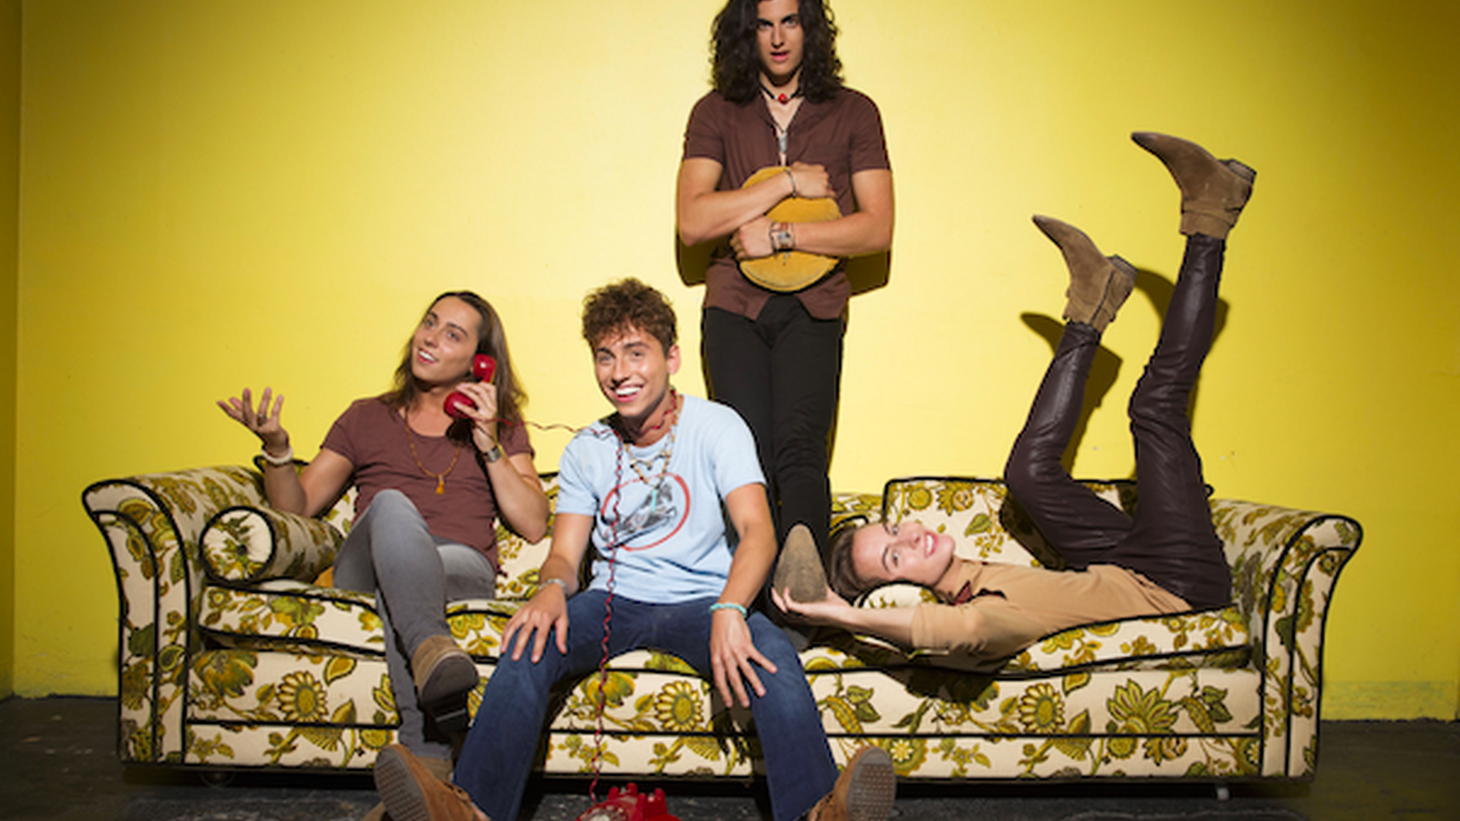 Michigan quartet Greta Van Fleet has seen a quick rise to fame for their classic rock sound. They were the talk of Coachella this year and will bring a blistering live set to our basement studio.